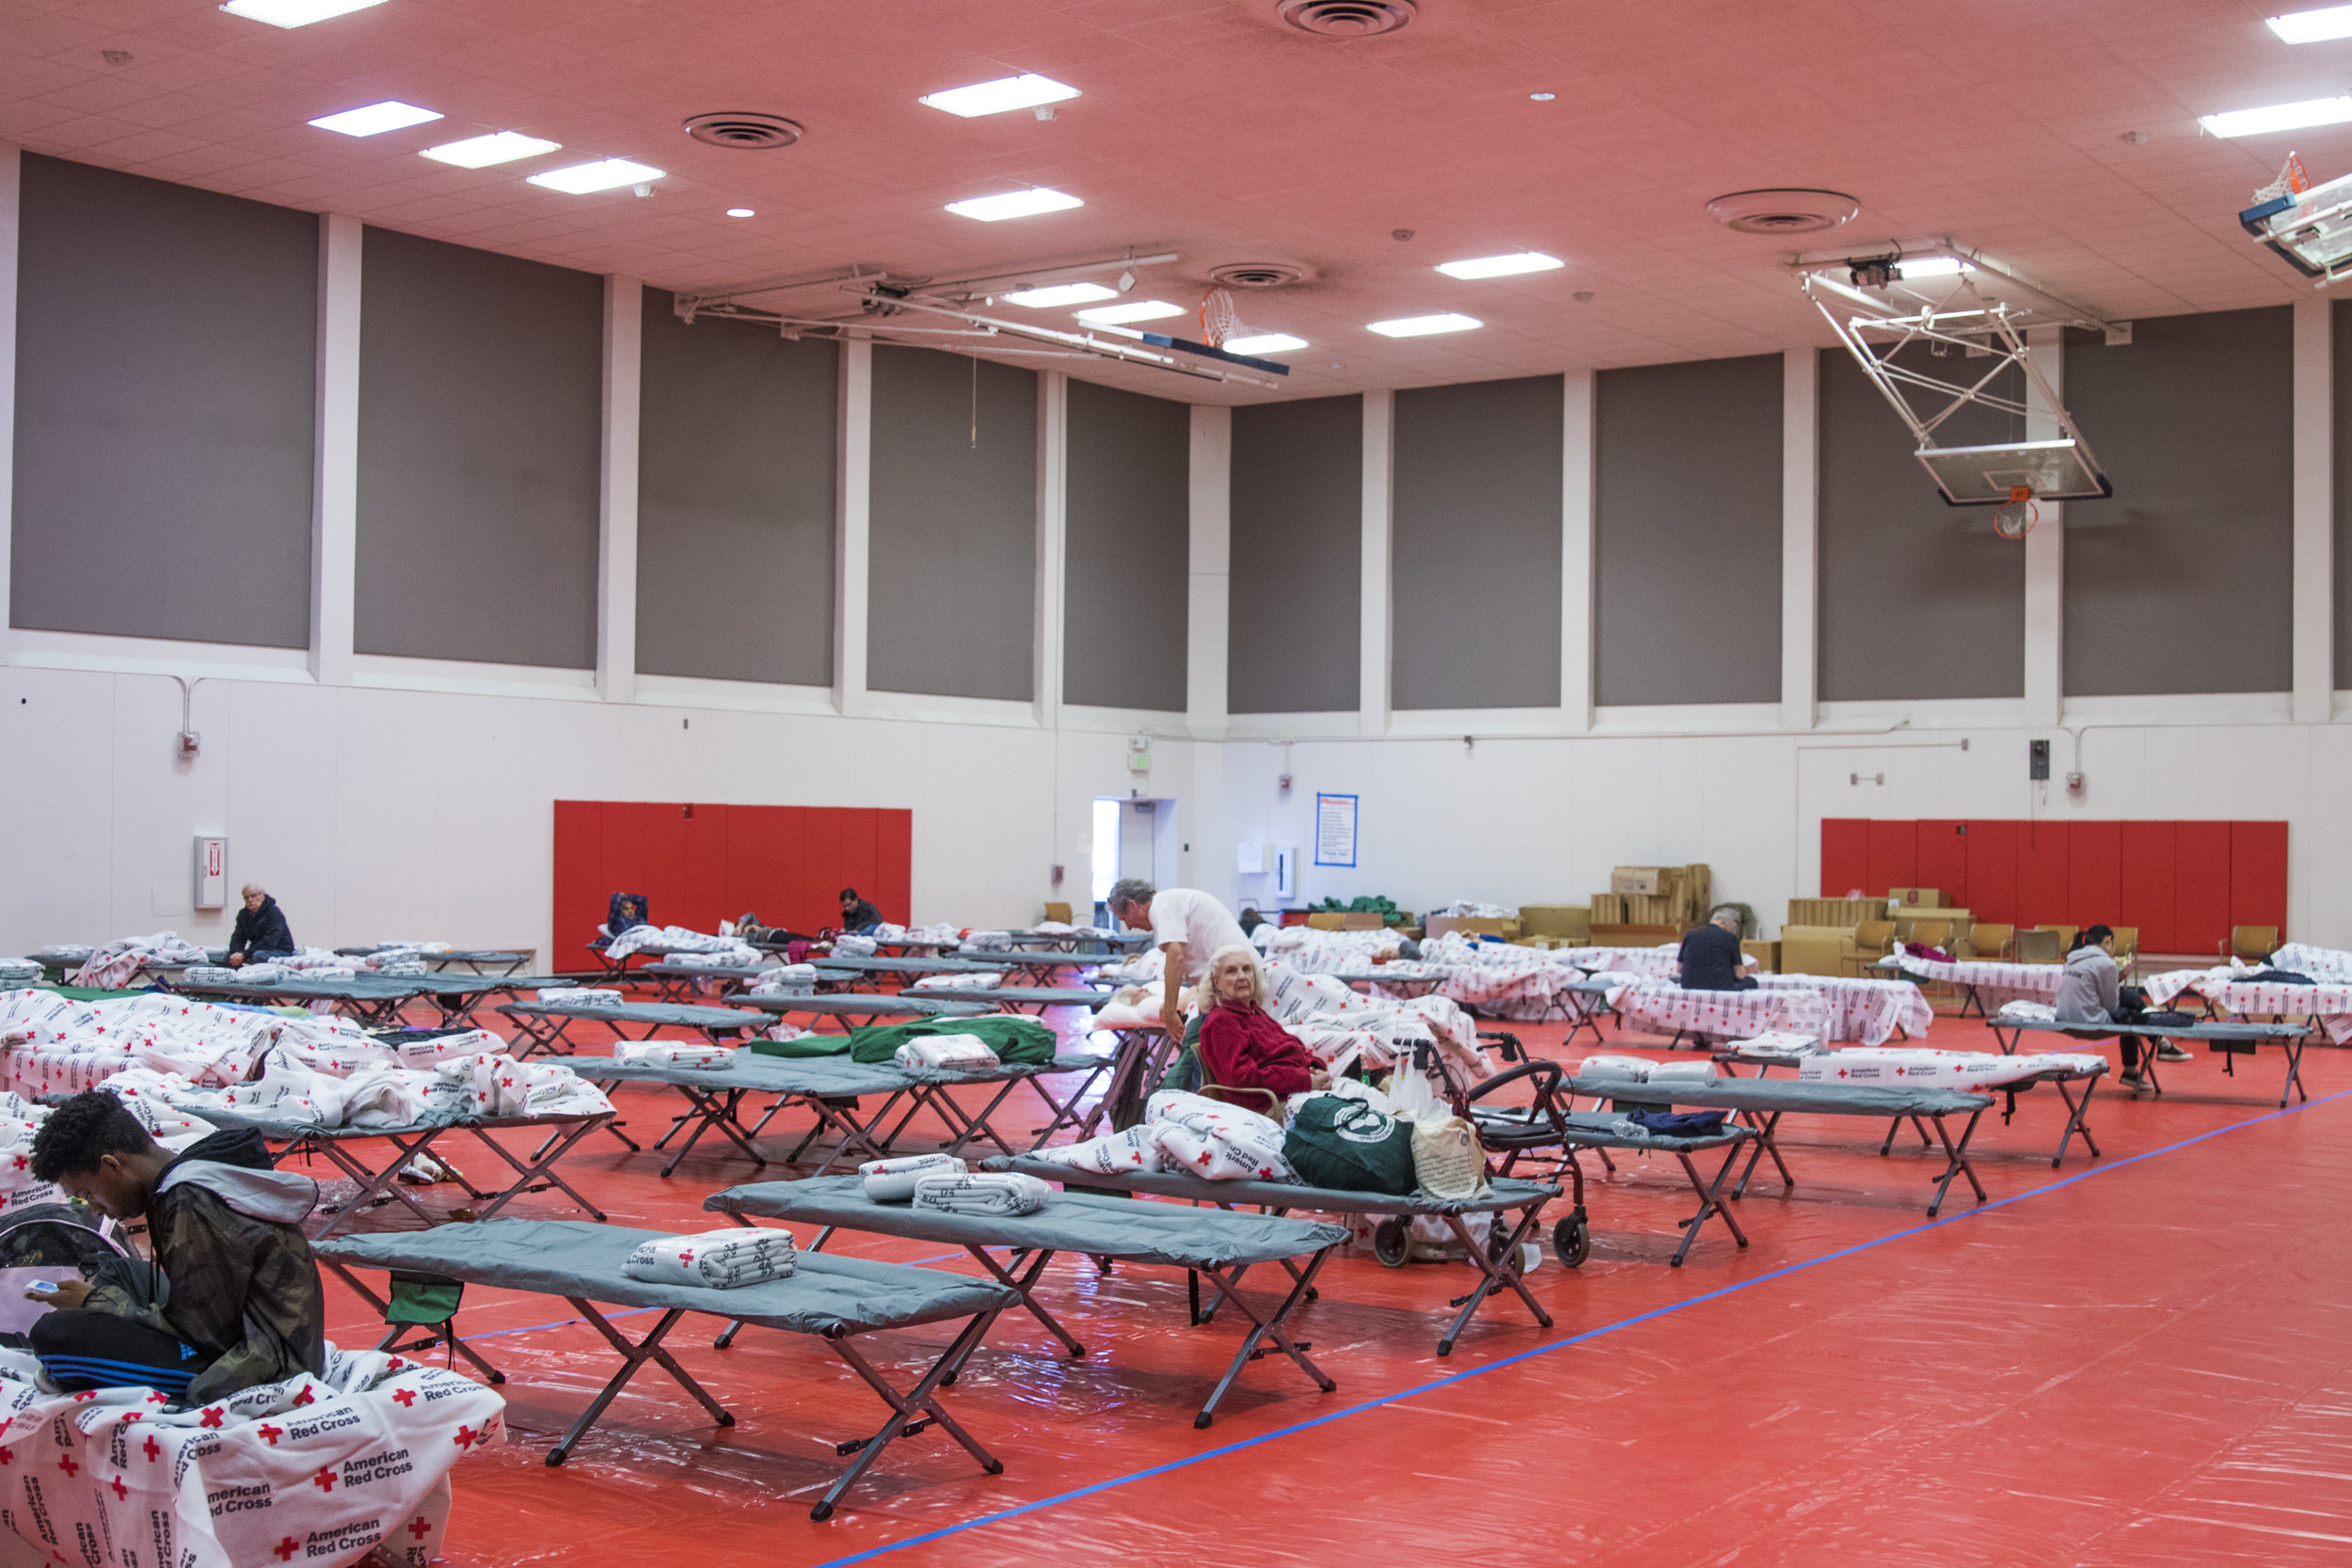 The inside of Pierce College's North Gym has been turned into an evacuation center for people seeking refuge from the Woolsey Fire on November 9, 2018. The college is located in Woodland Hills, California. (Zane Meyer-Thornton/Corsair Photo)